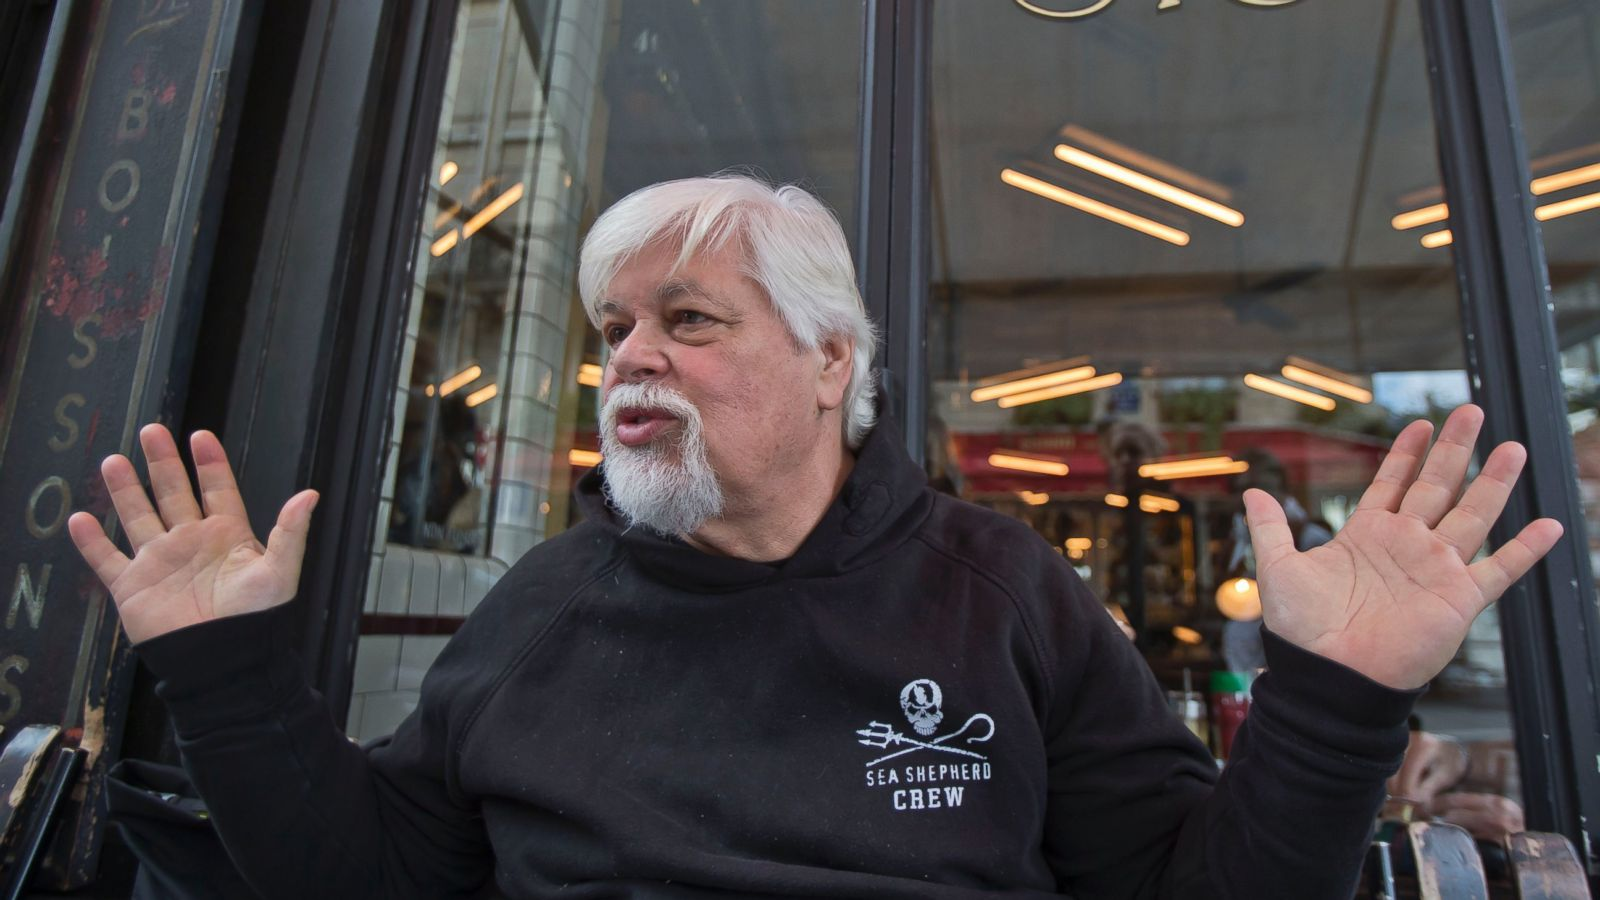 'The camera is the most powerful weapon we've ever invented, so we had to utilize that weapon. That's why we created the (reality) show,' Sea Shepherd founder Paul Watson, shown in 2012, said.